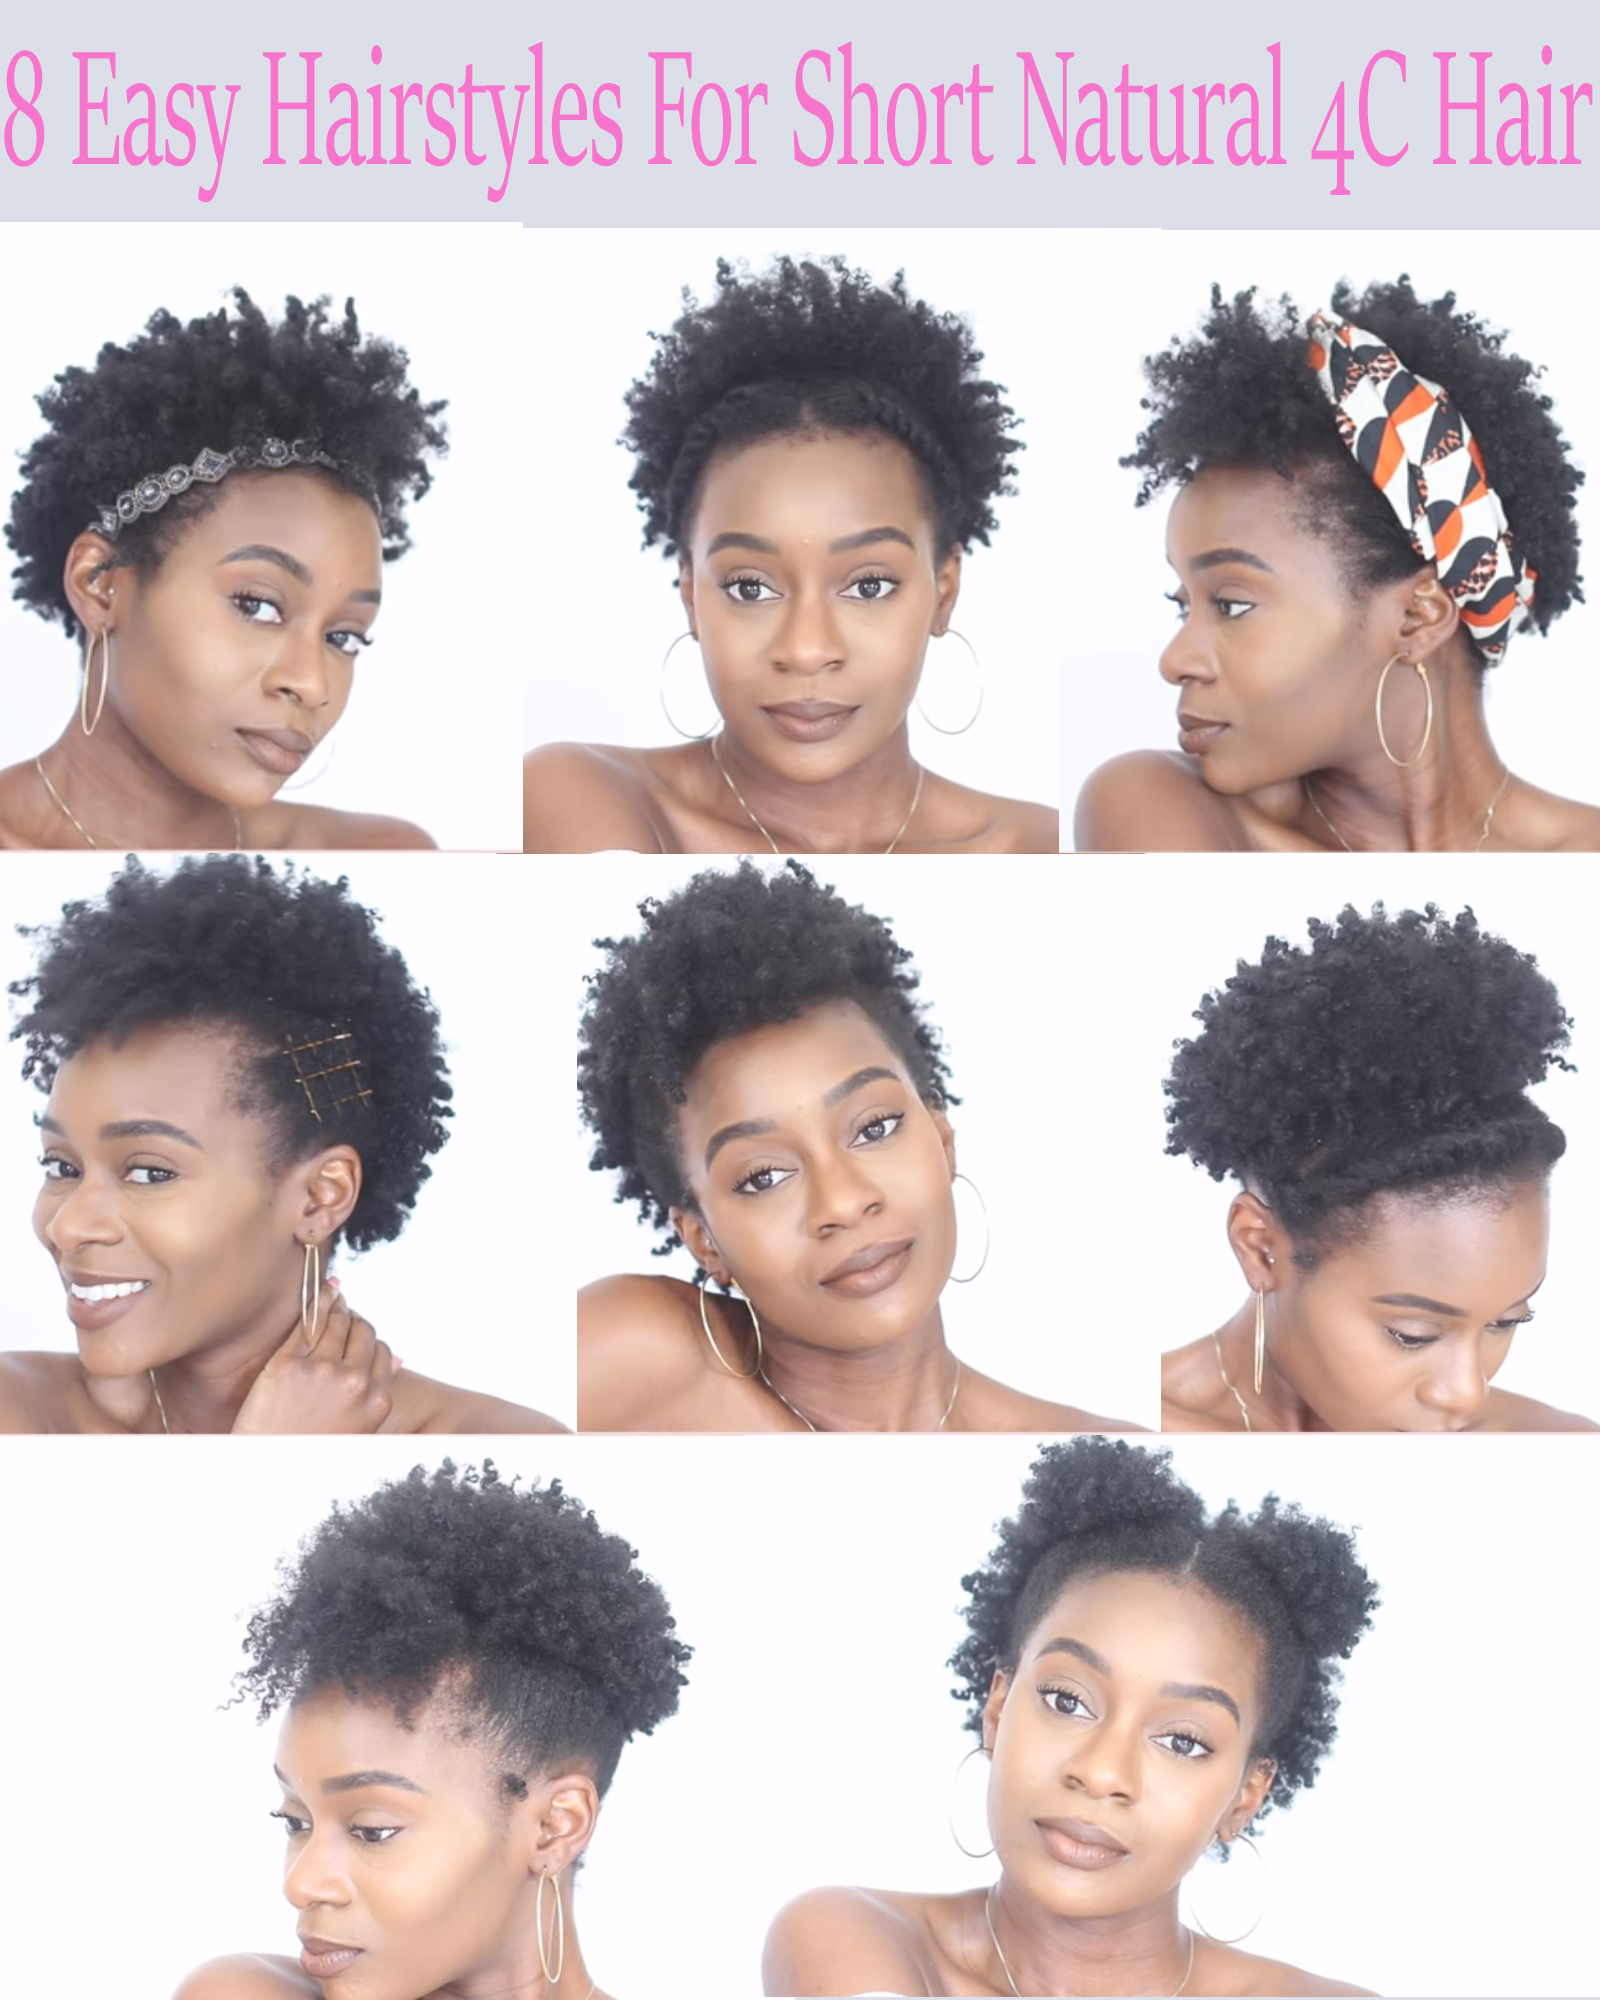 8 Easy Protective Hairstyles For Short Natural 4c Hair